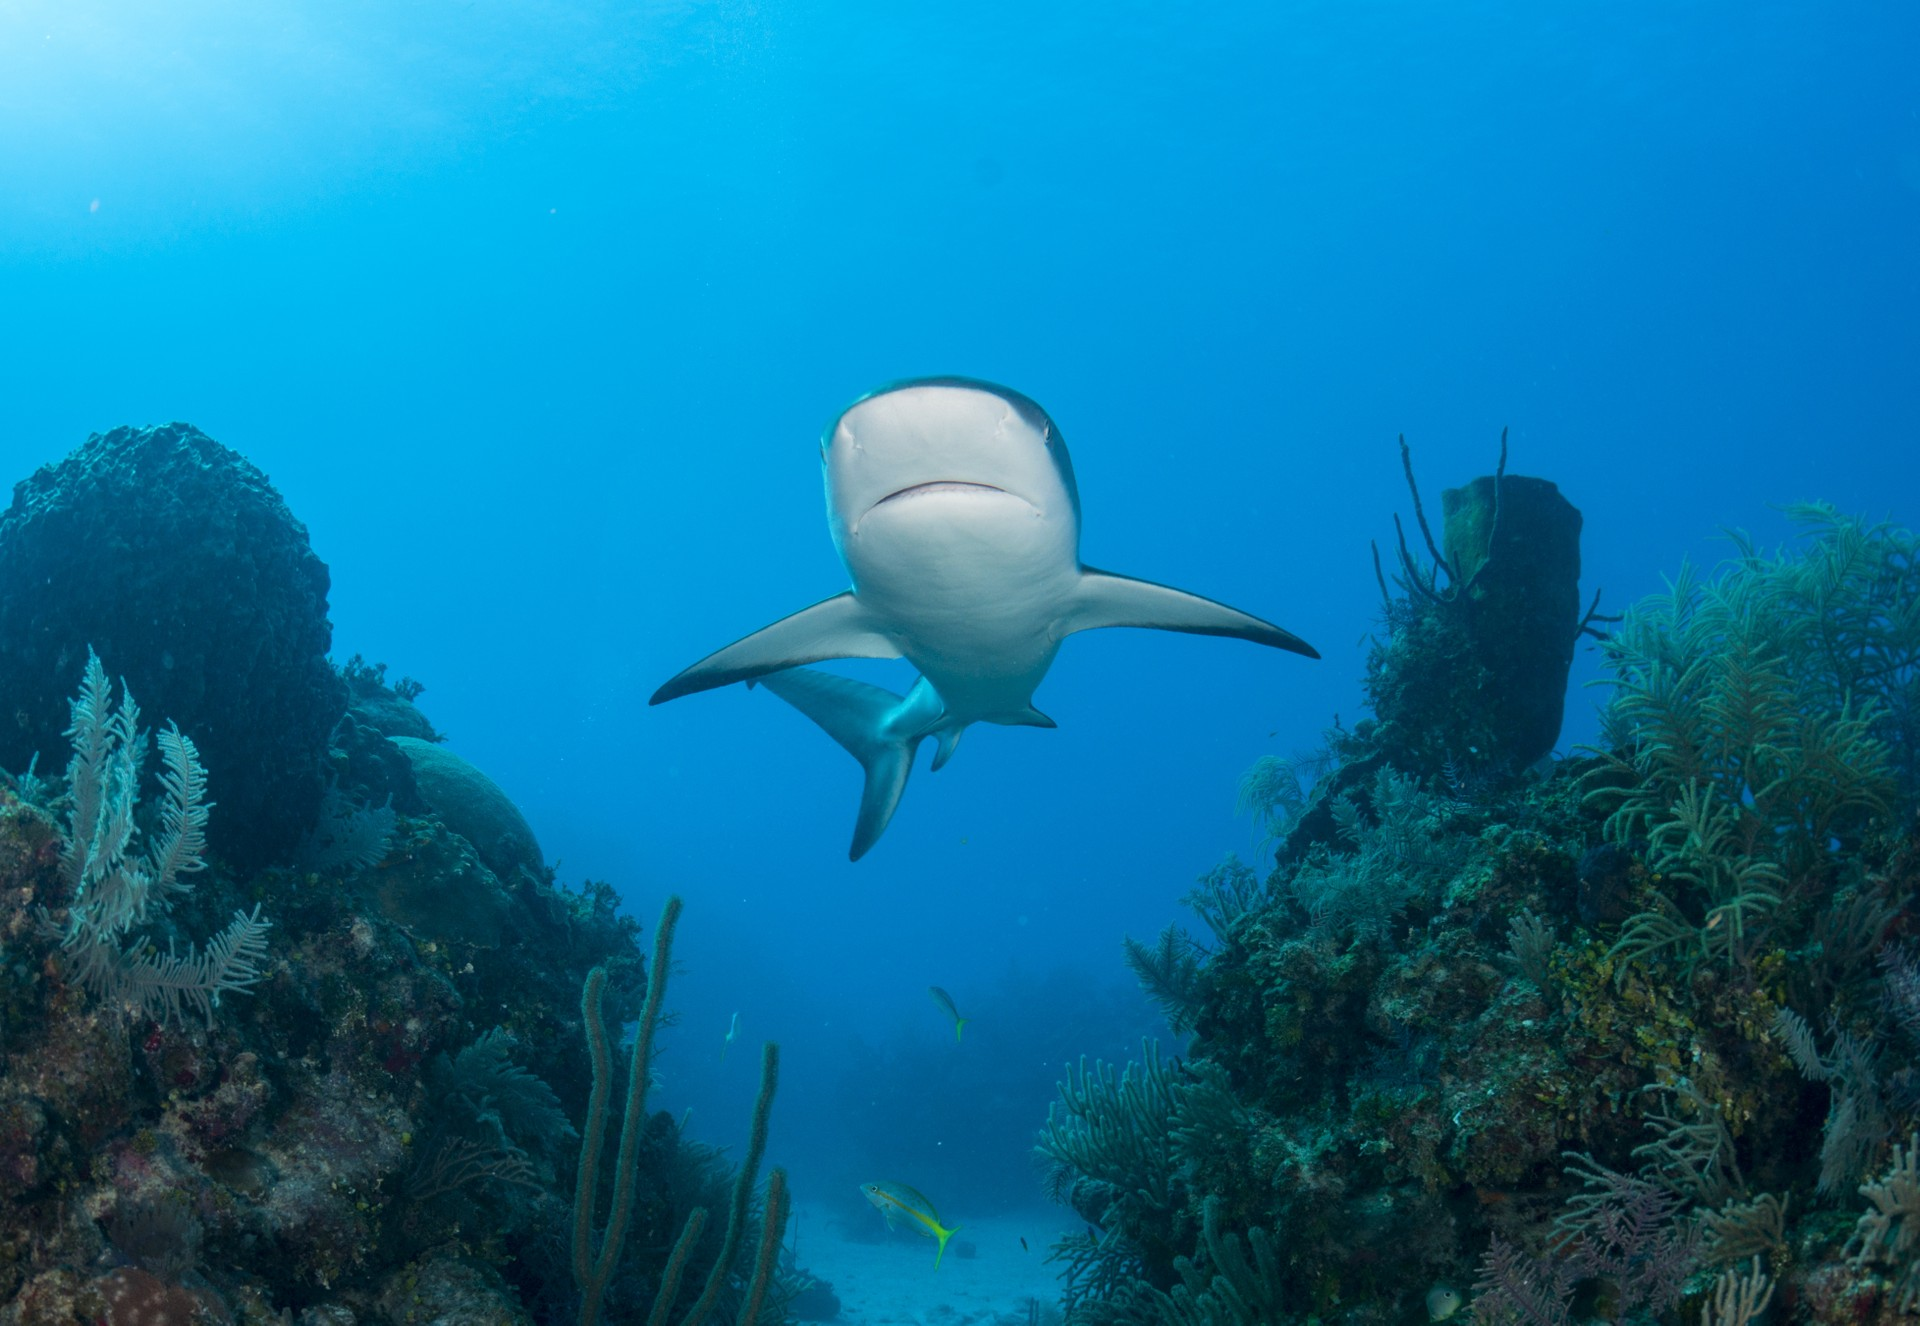 A Caribbean reef shark swims through the waters of the Jardins de la Reina